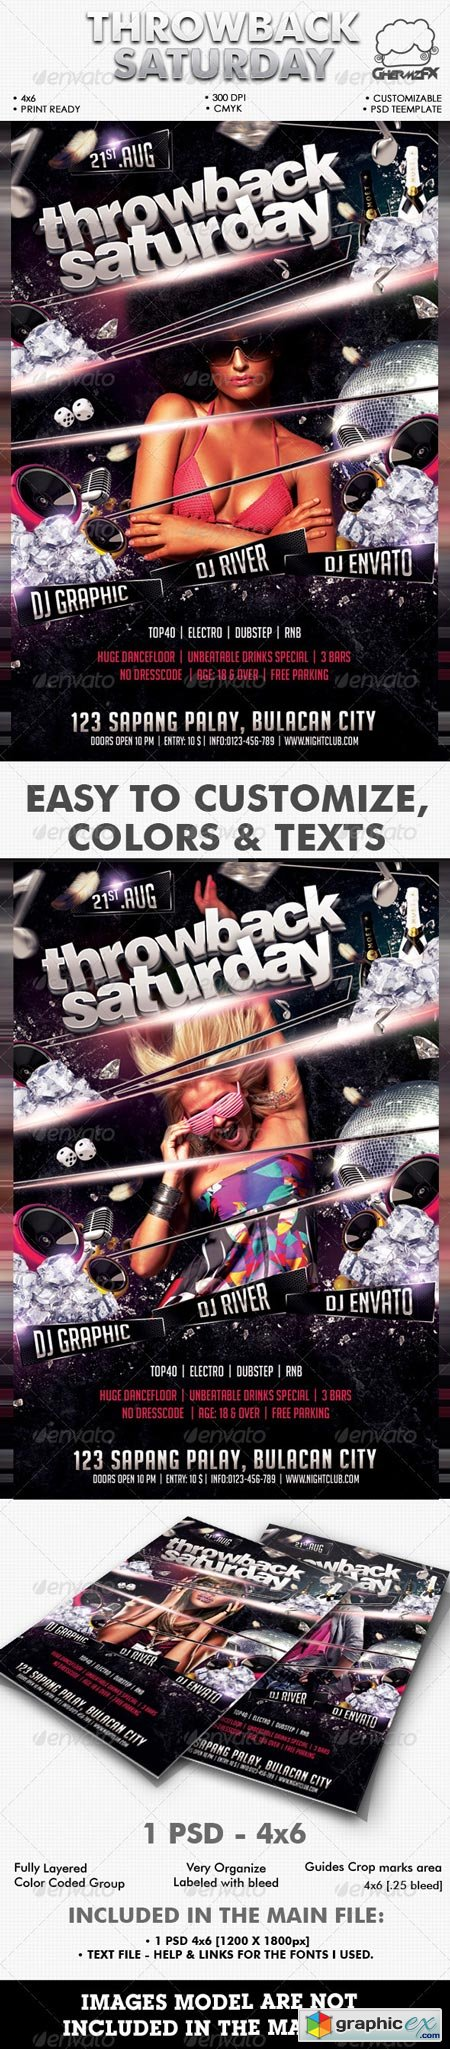 Throwback Saturday Flyer Template 2627695